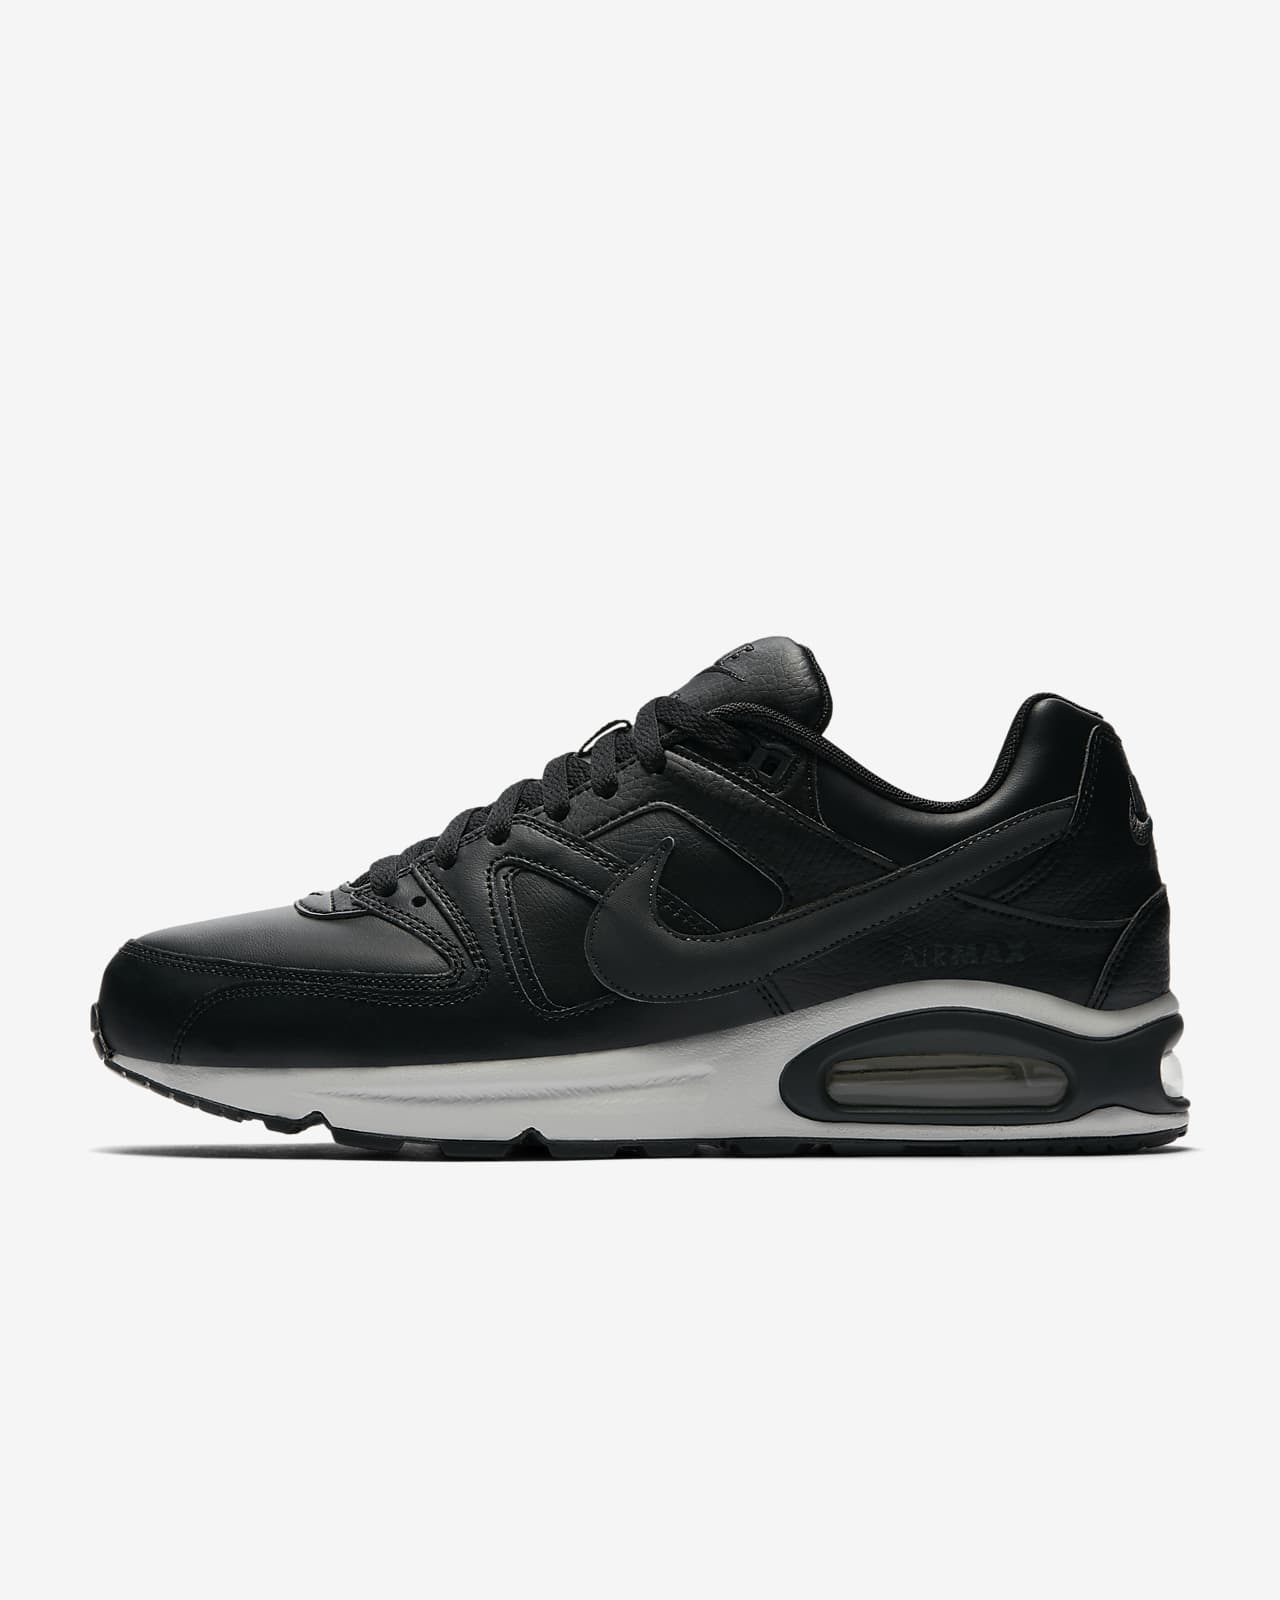 Chaussure Nike Air Max Command pour Homme